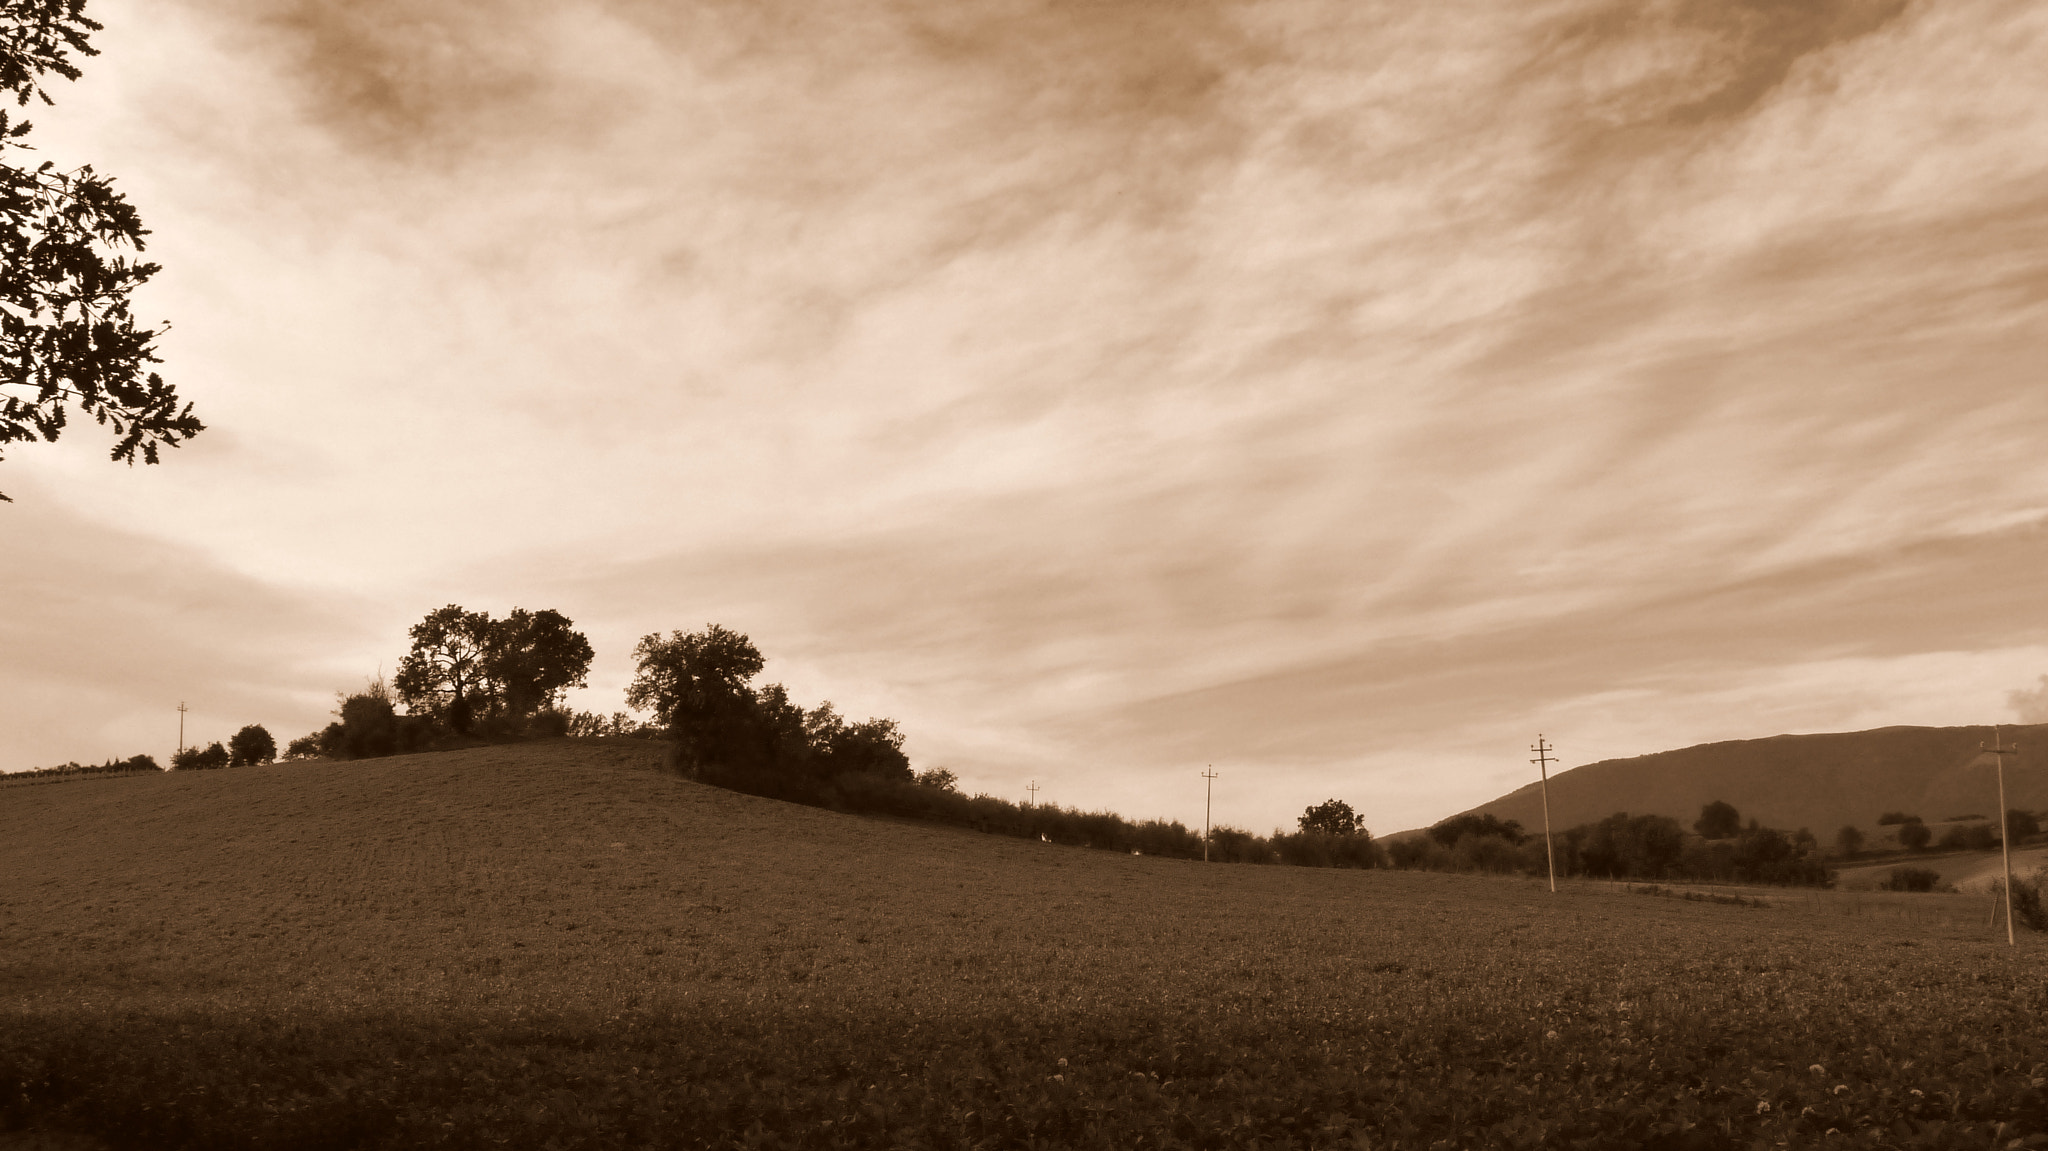 Photograph Landscape in Sepia by Ulderico Pontini on 500px